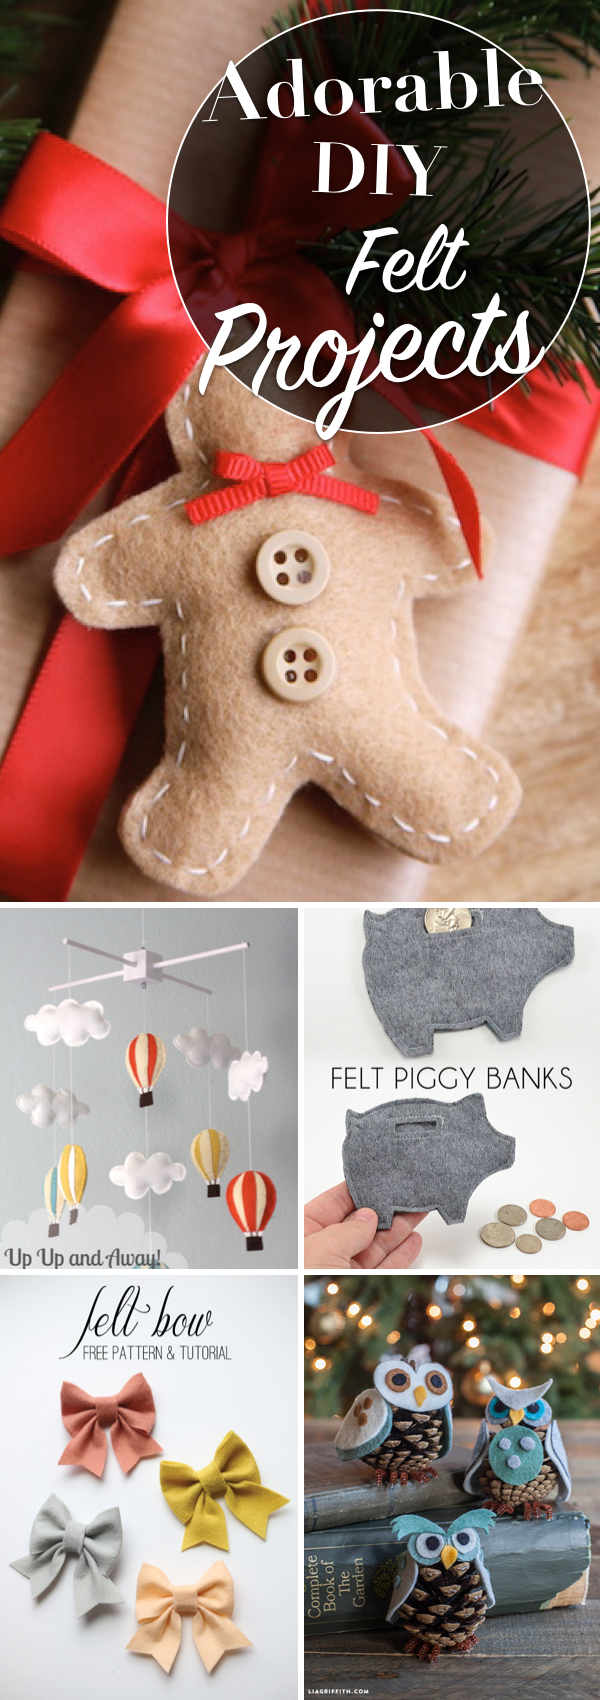 Adorable DIY Felt Projects